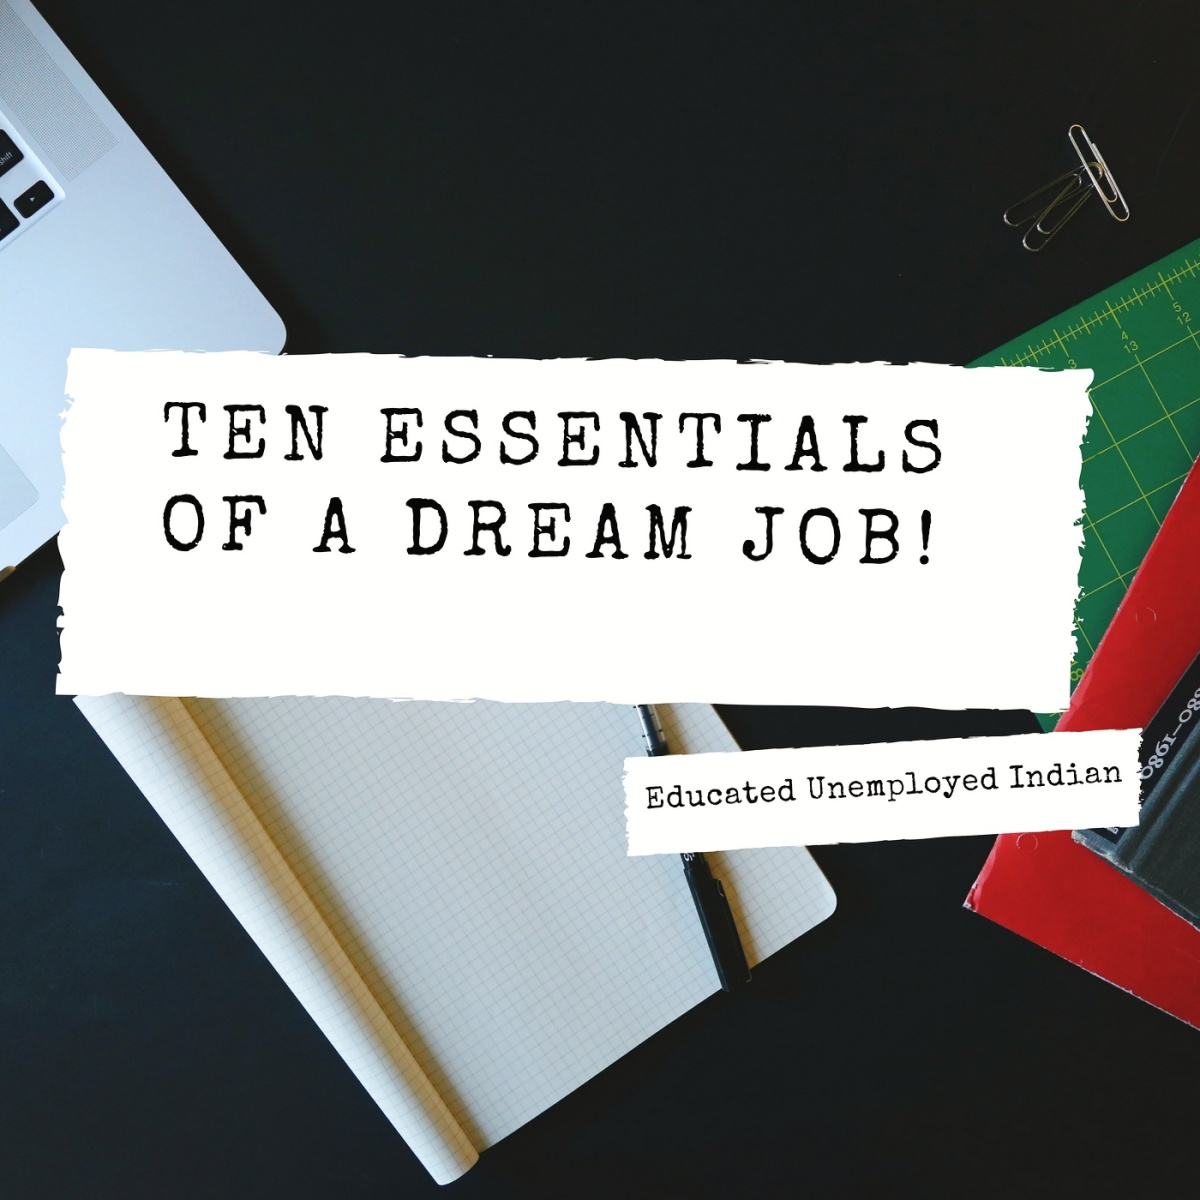 Ten essentials of a dream job!